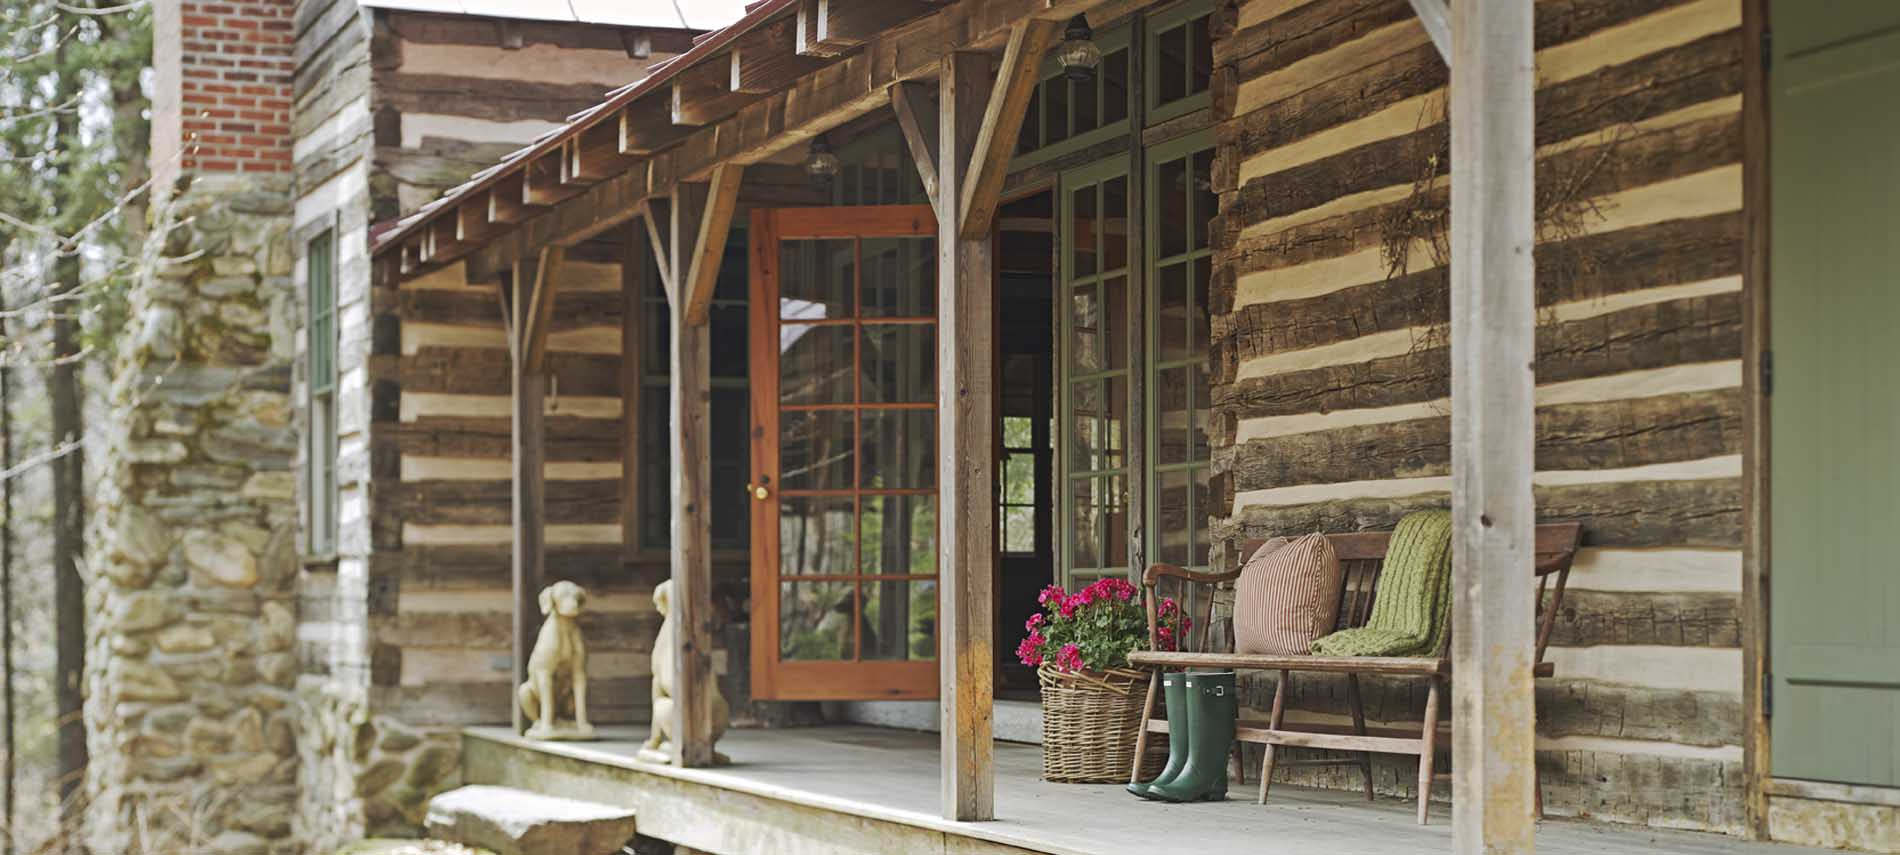 porch of luxury vermont cabin hunter boots and flowers by bench